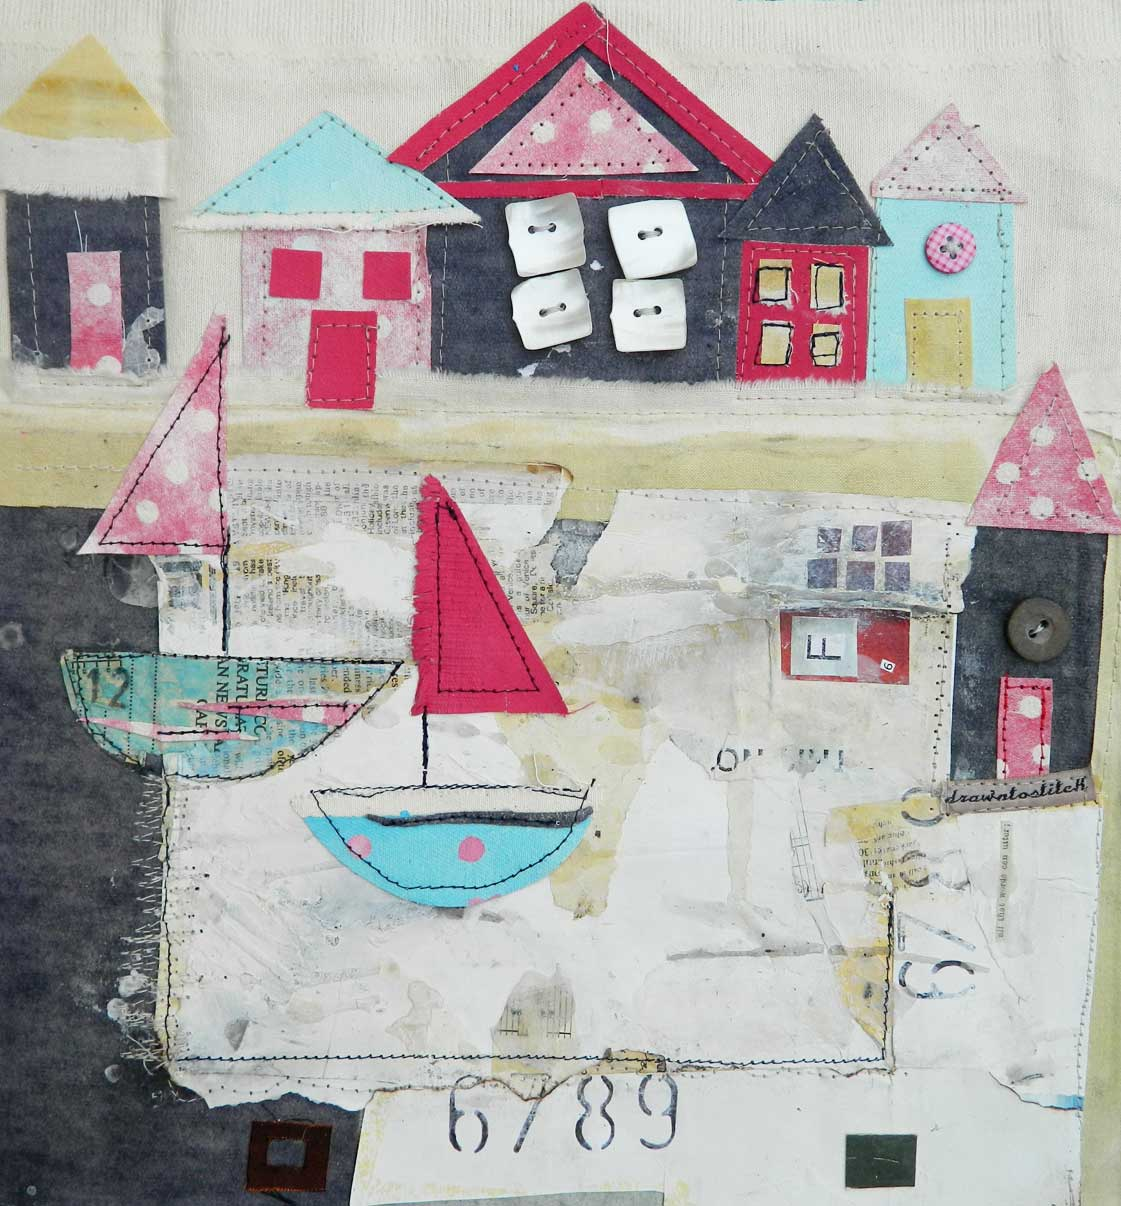 Beach Huts and a Lake, £135, by Louise O'Hara, from Madebyhandonline.com